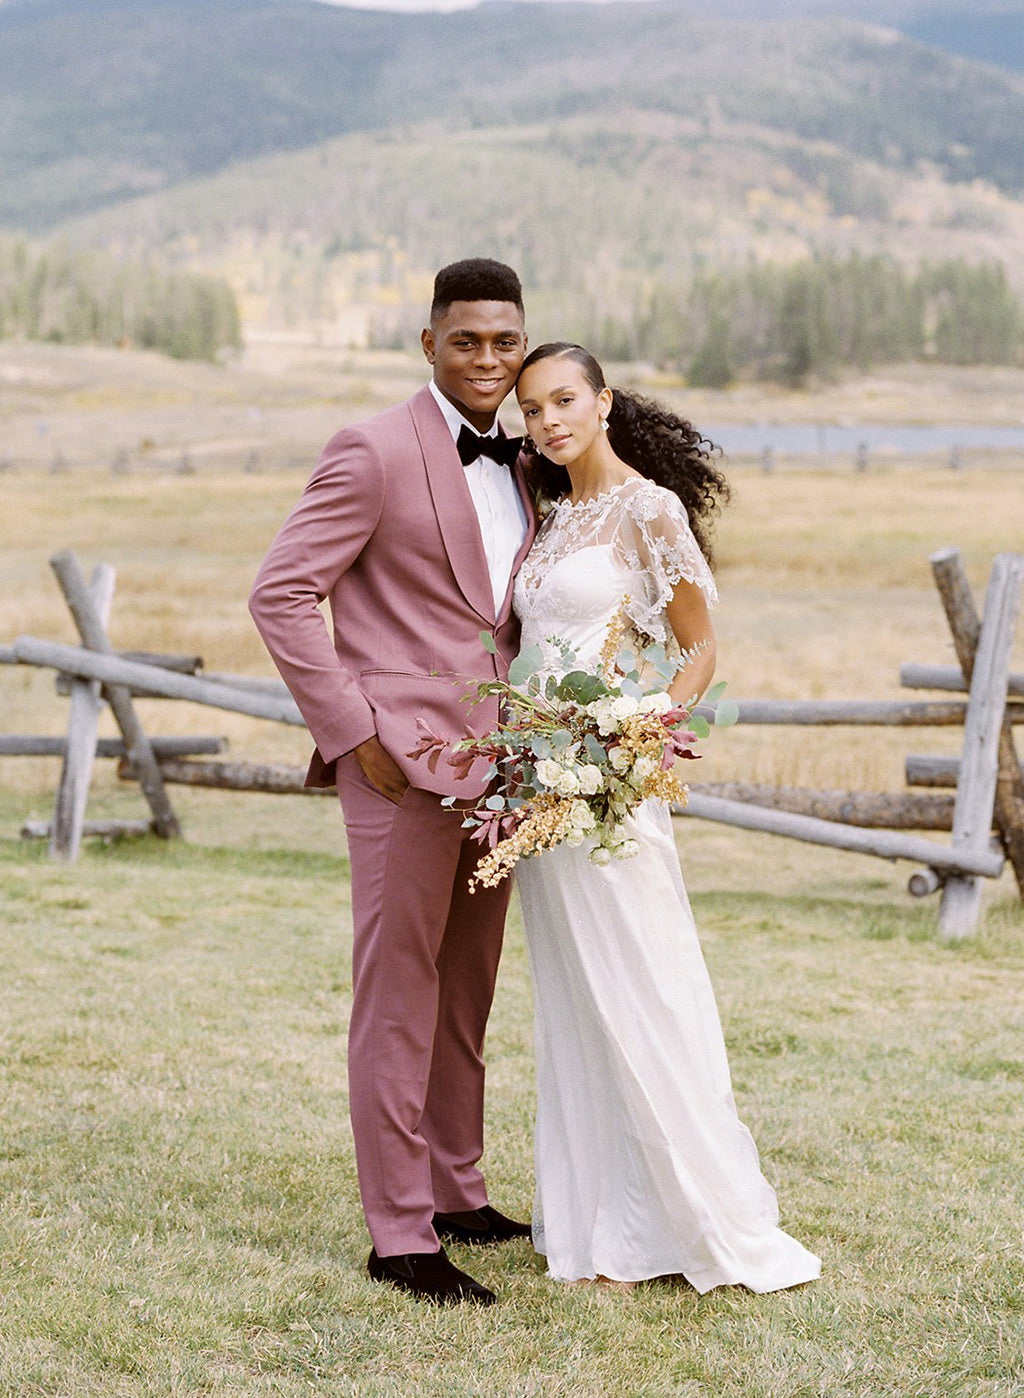 Fashion Wedding with Colorful Tuxedo